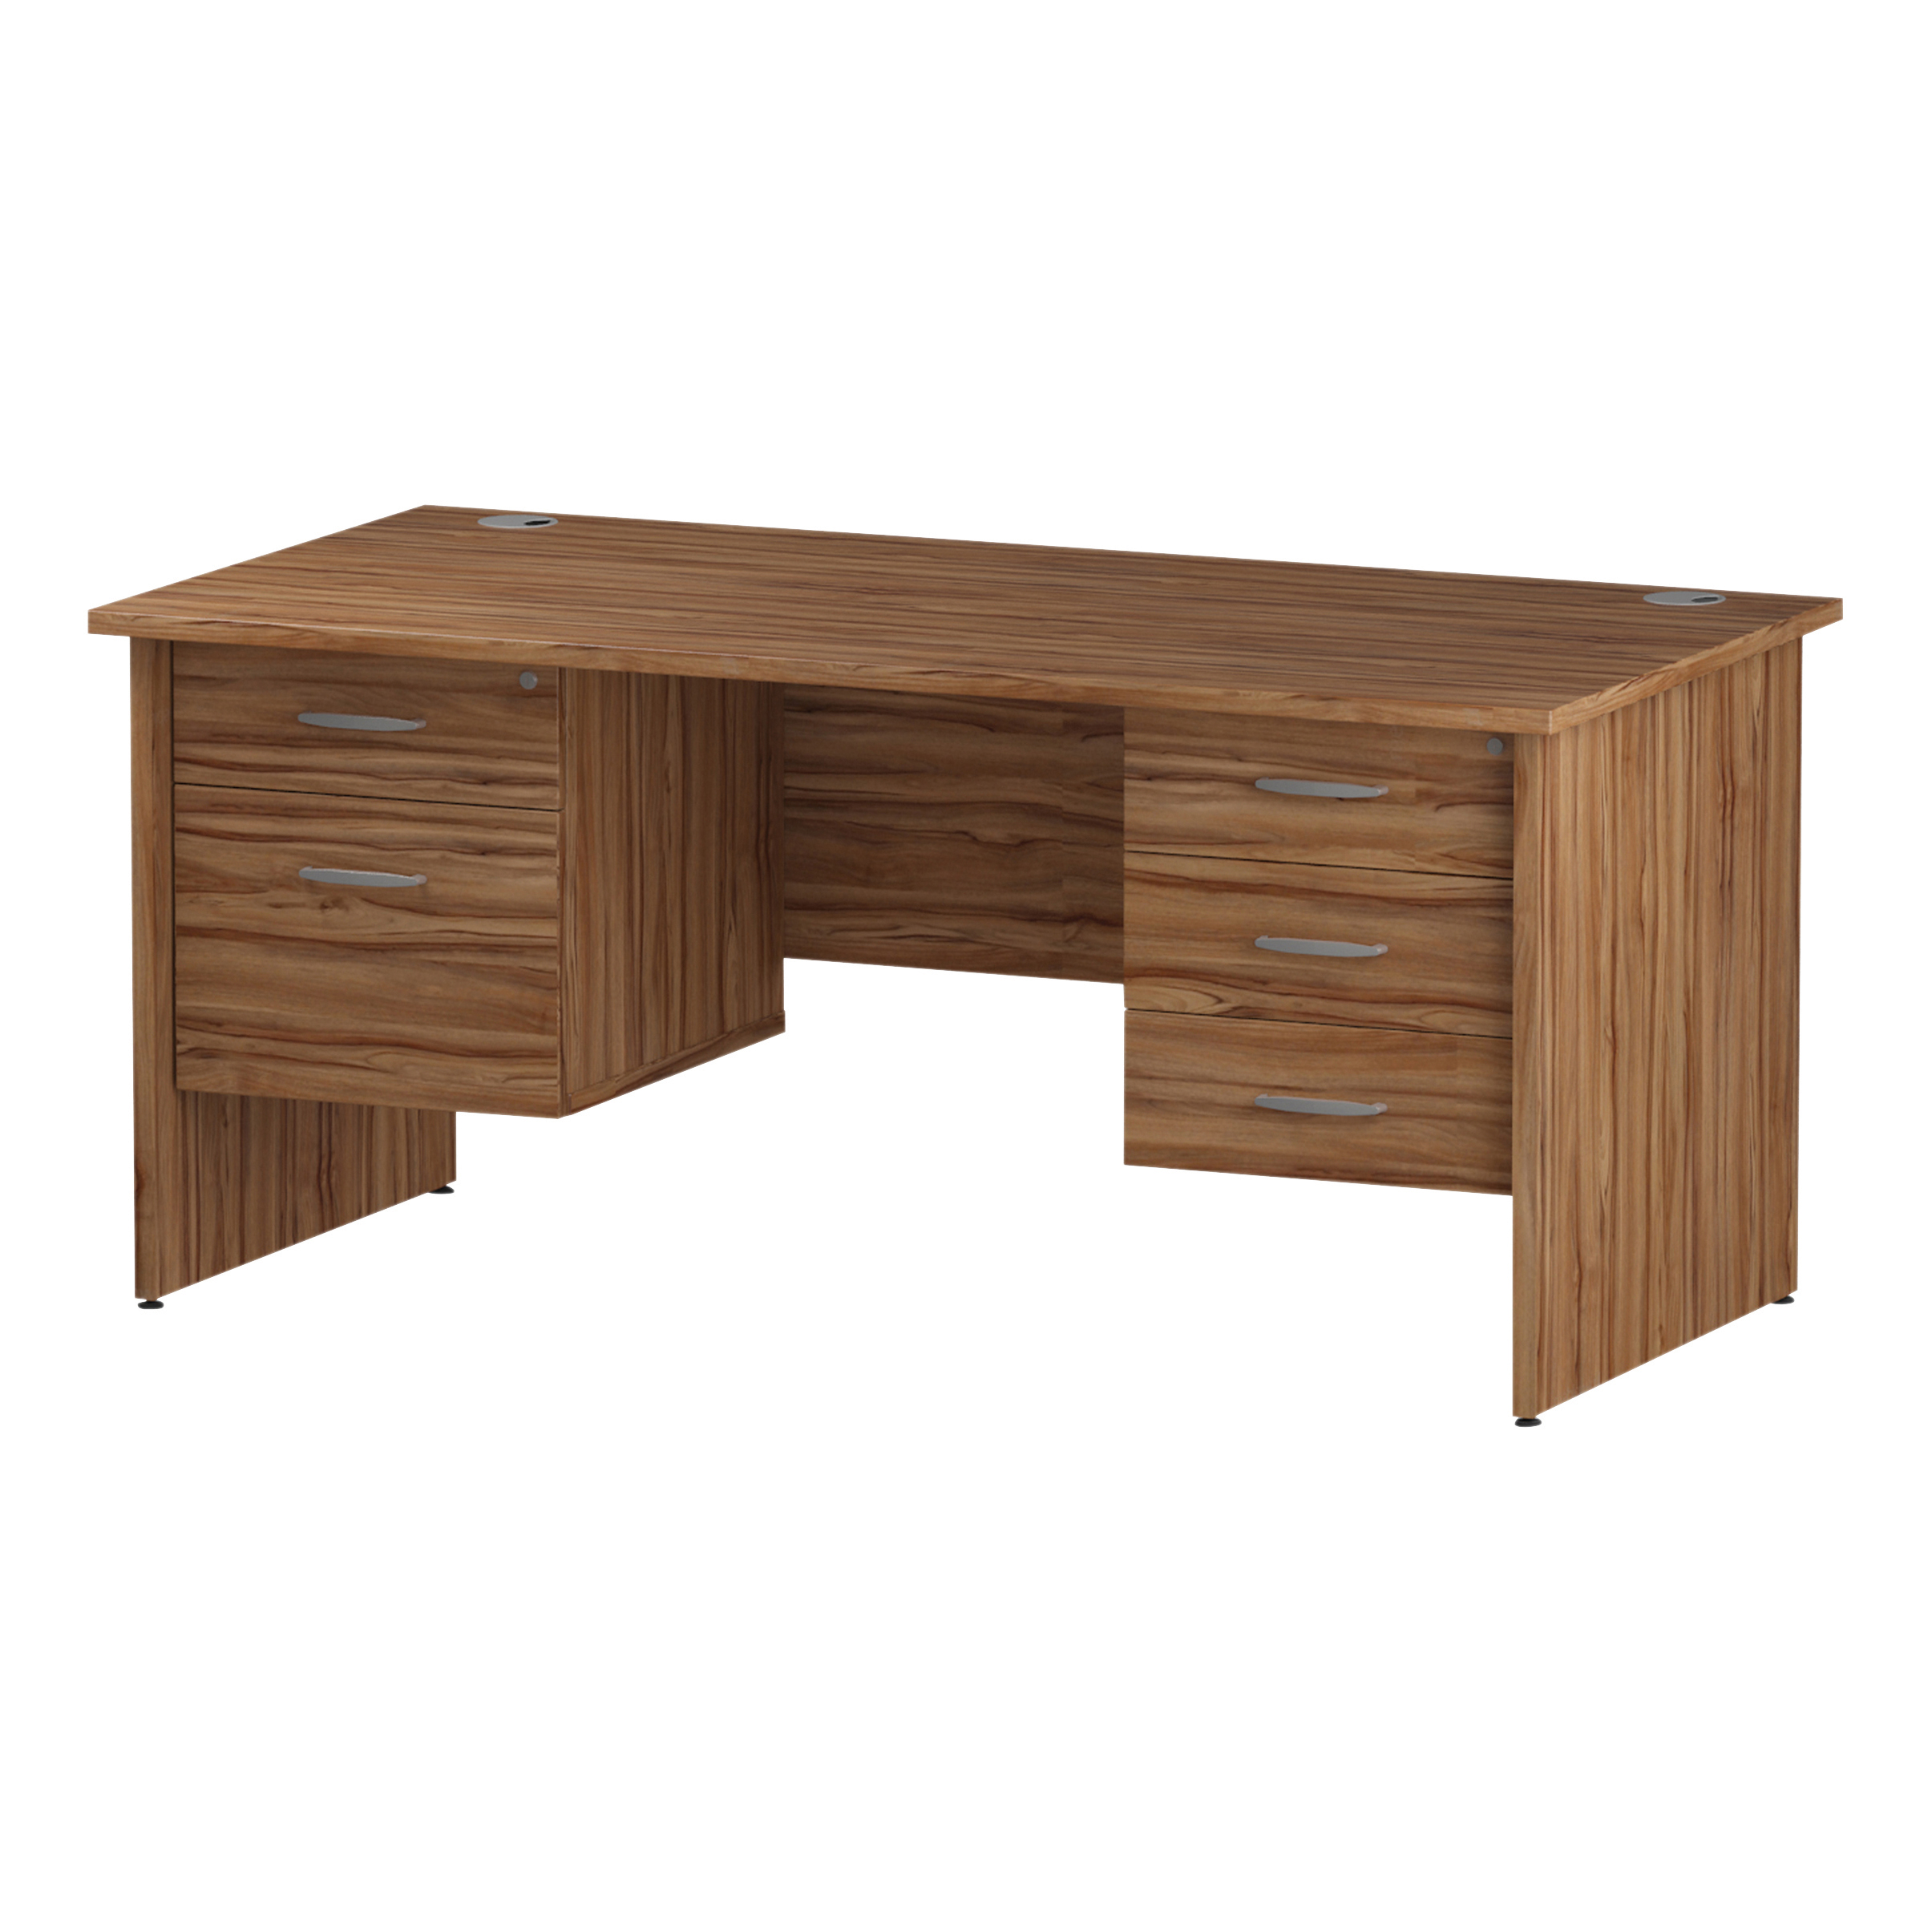 Trexus Rectangular Desk Panel End Leg 1600x800mm Double Fixed Pedestal 2&3 Drawers Walnut Ref I001987